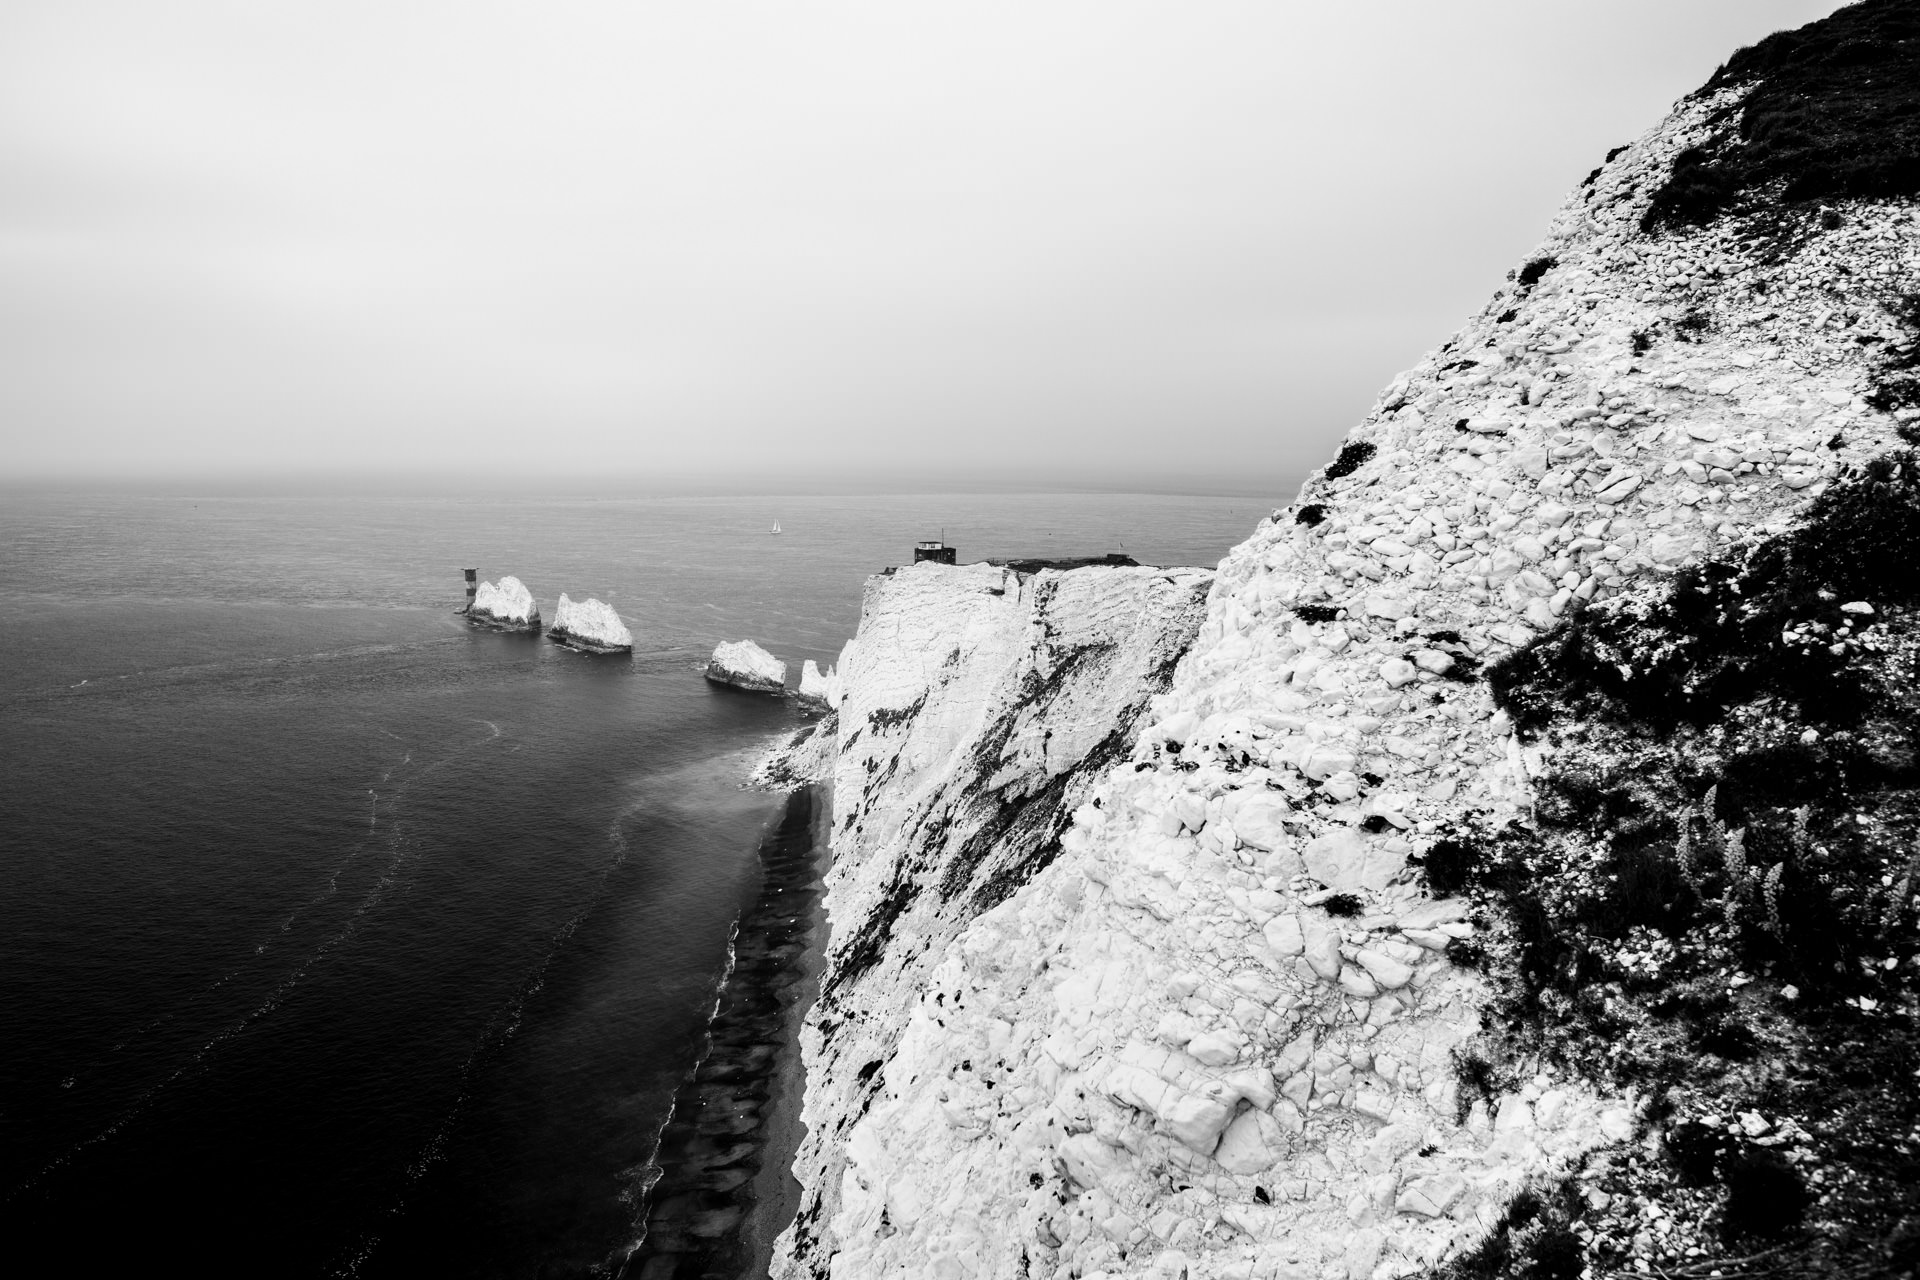 The Needles from the south side.